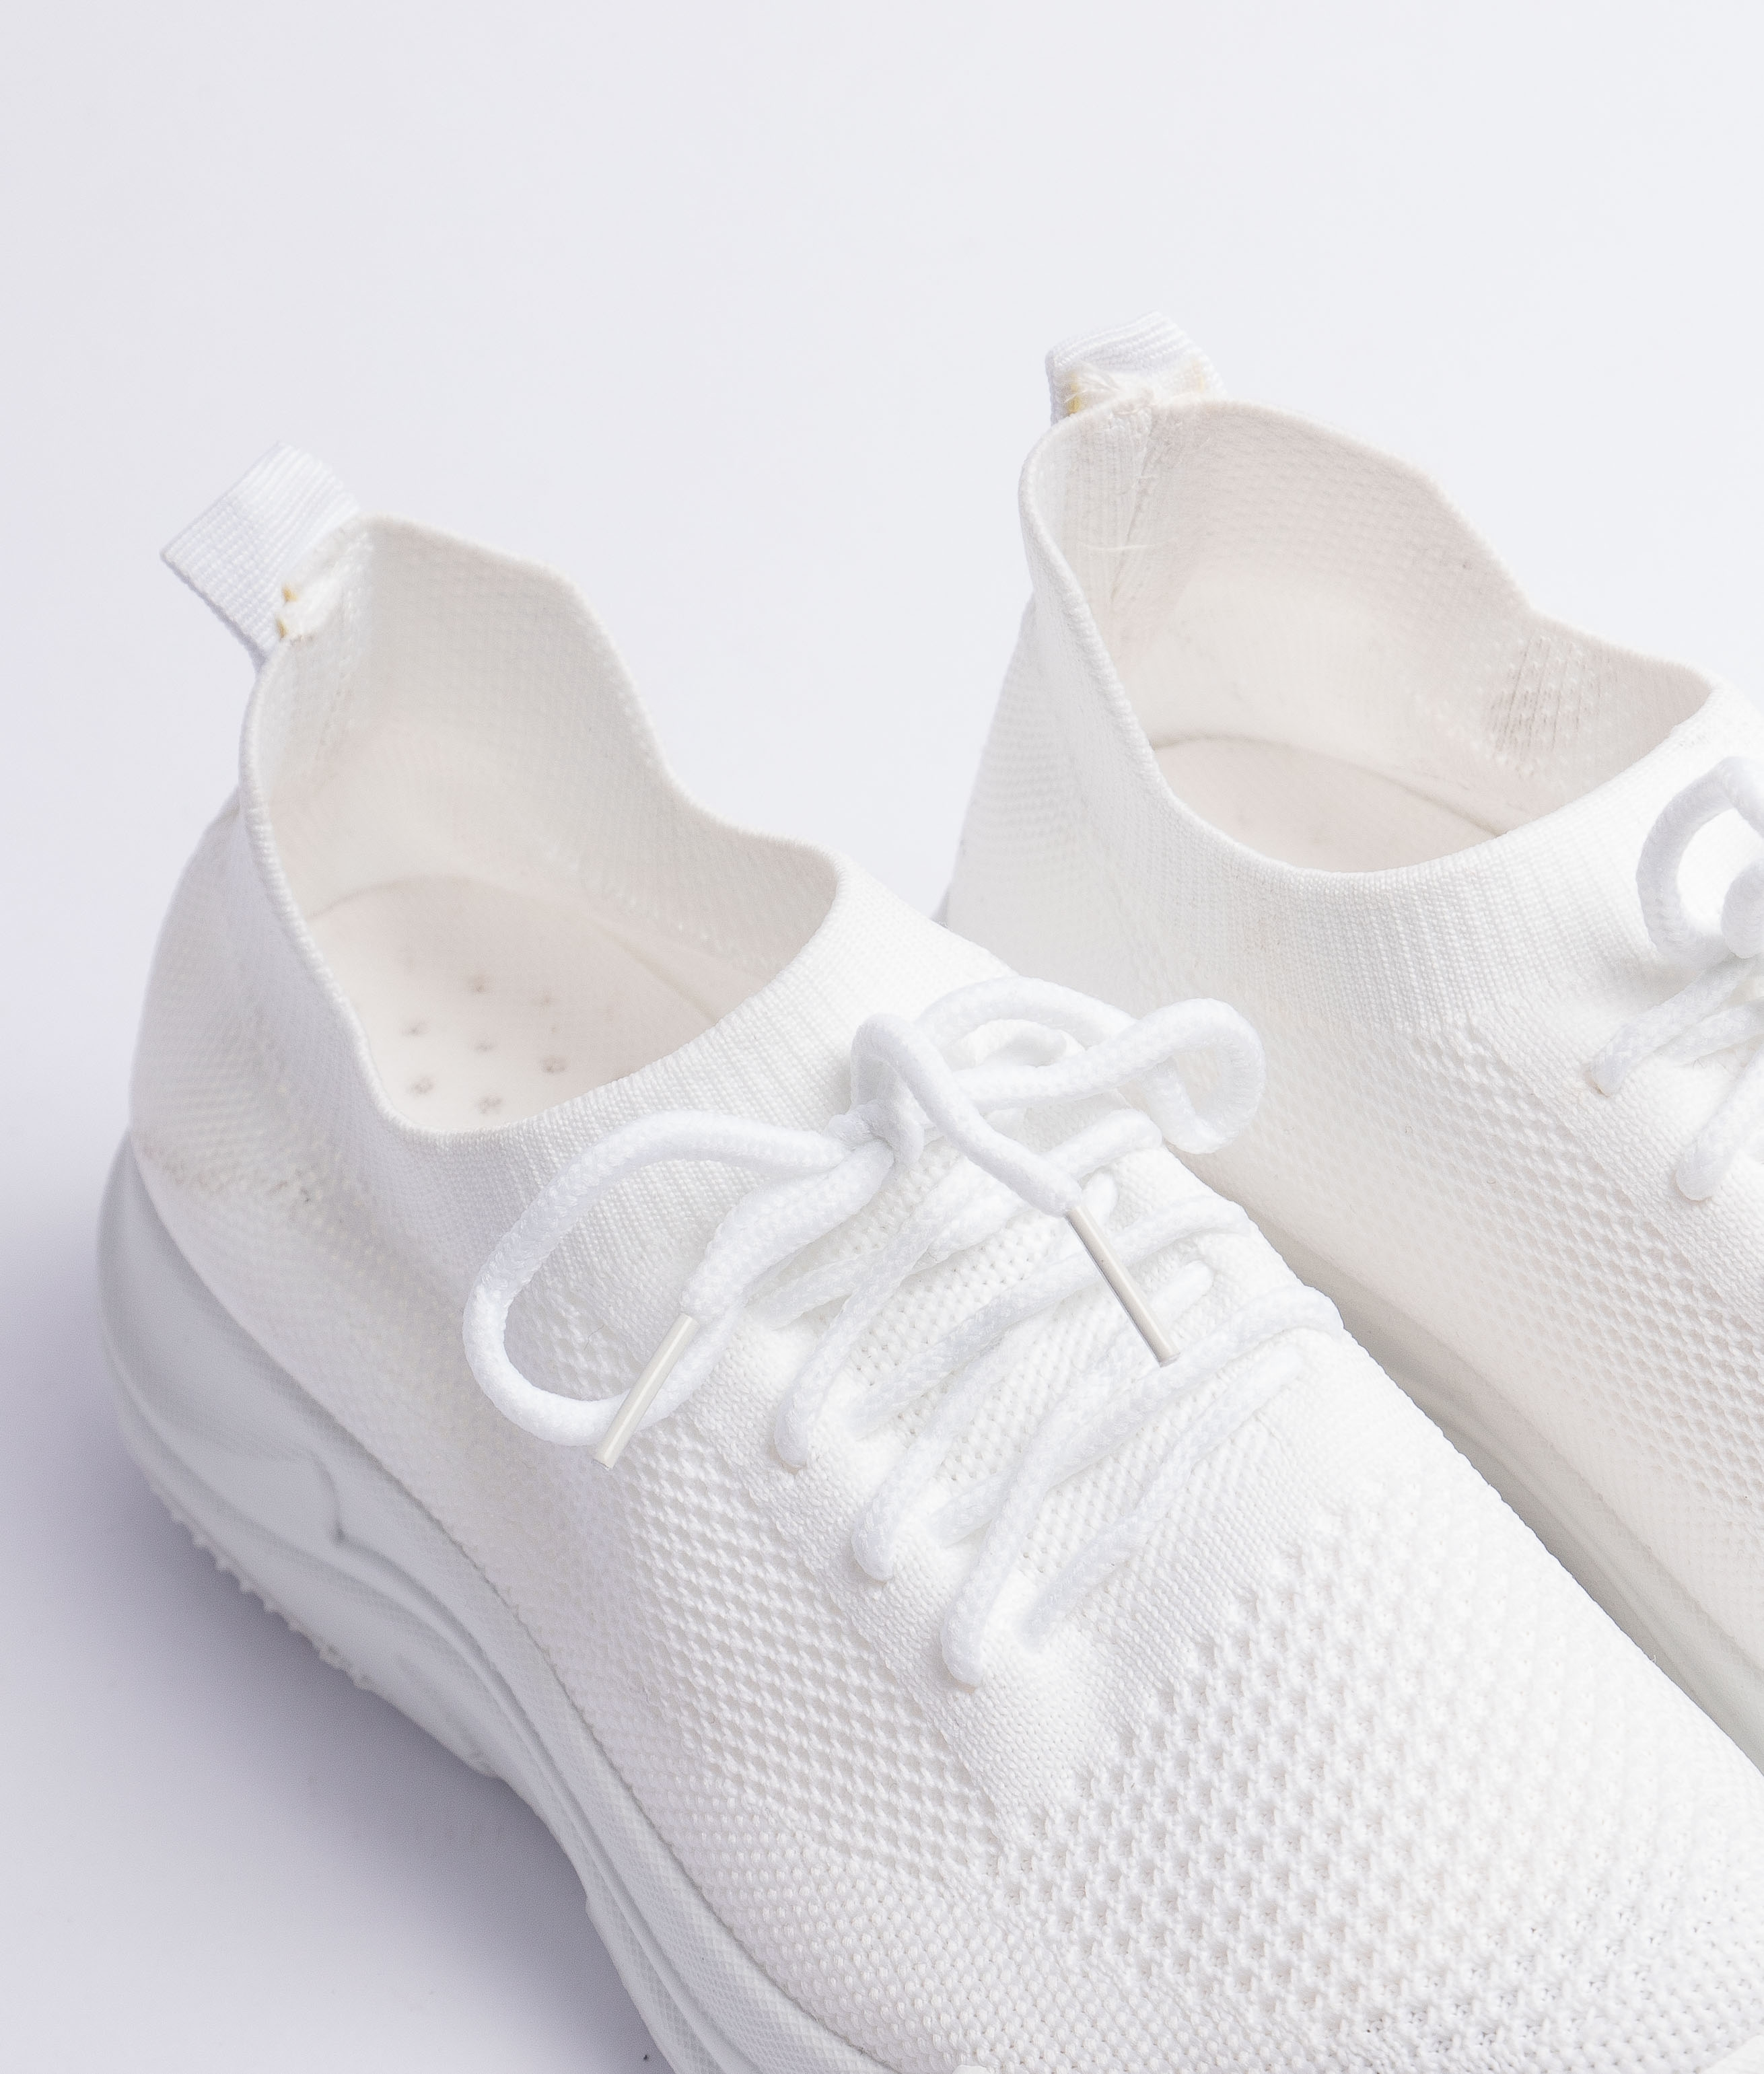 Sneakers Desy - Blanco